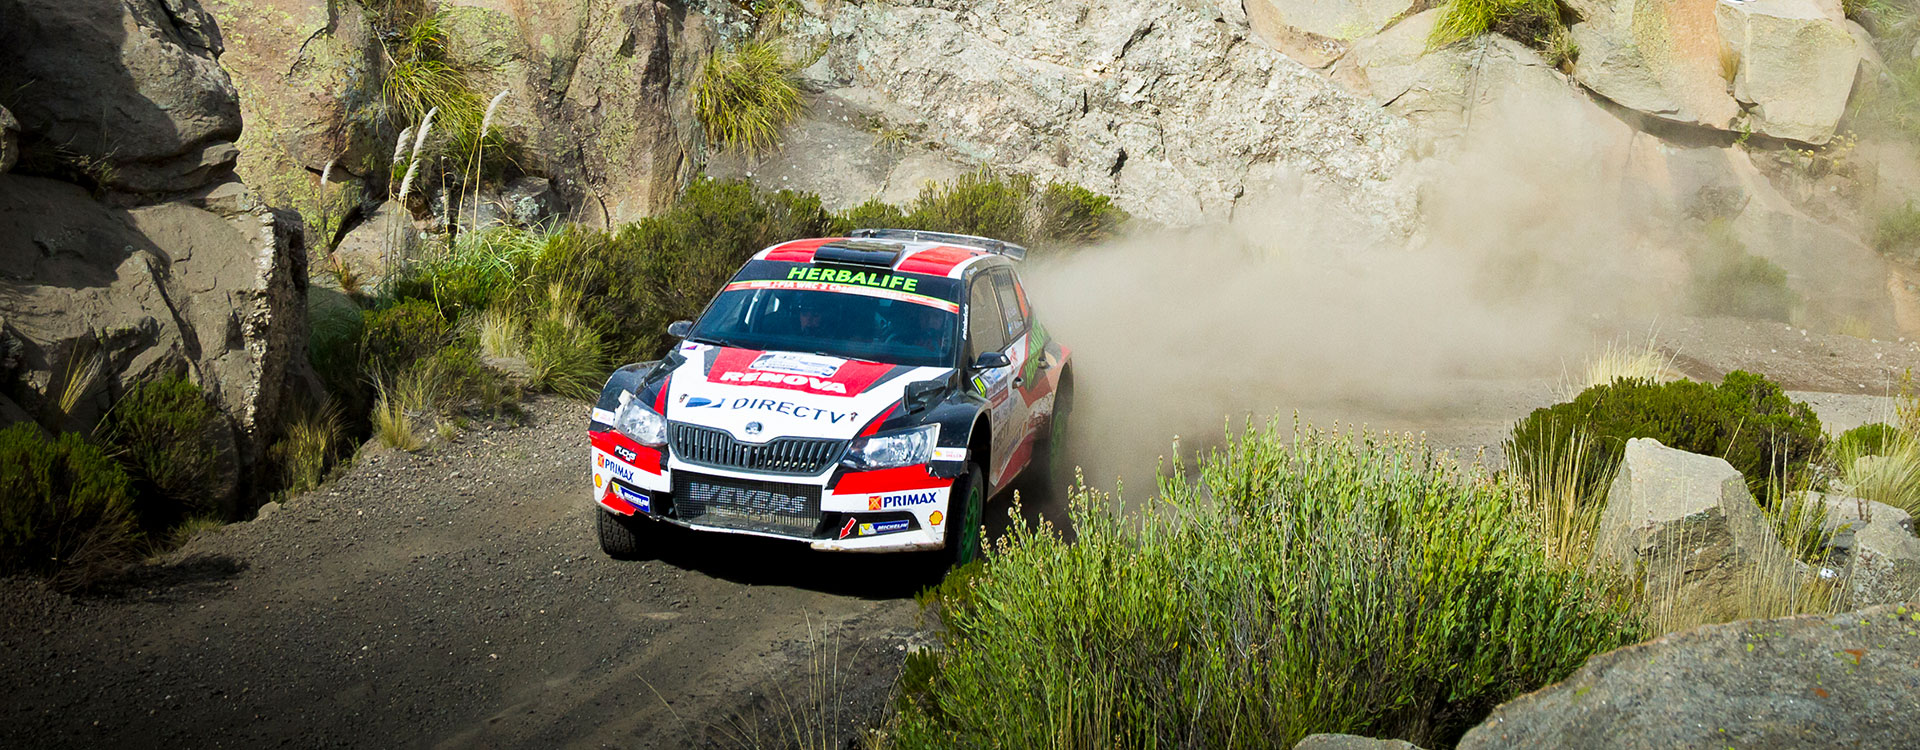 ŠKODA delivers 100th FABIA R5